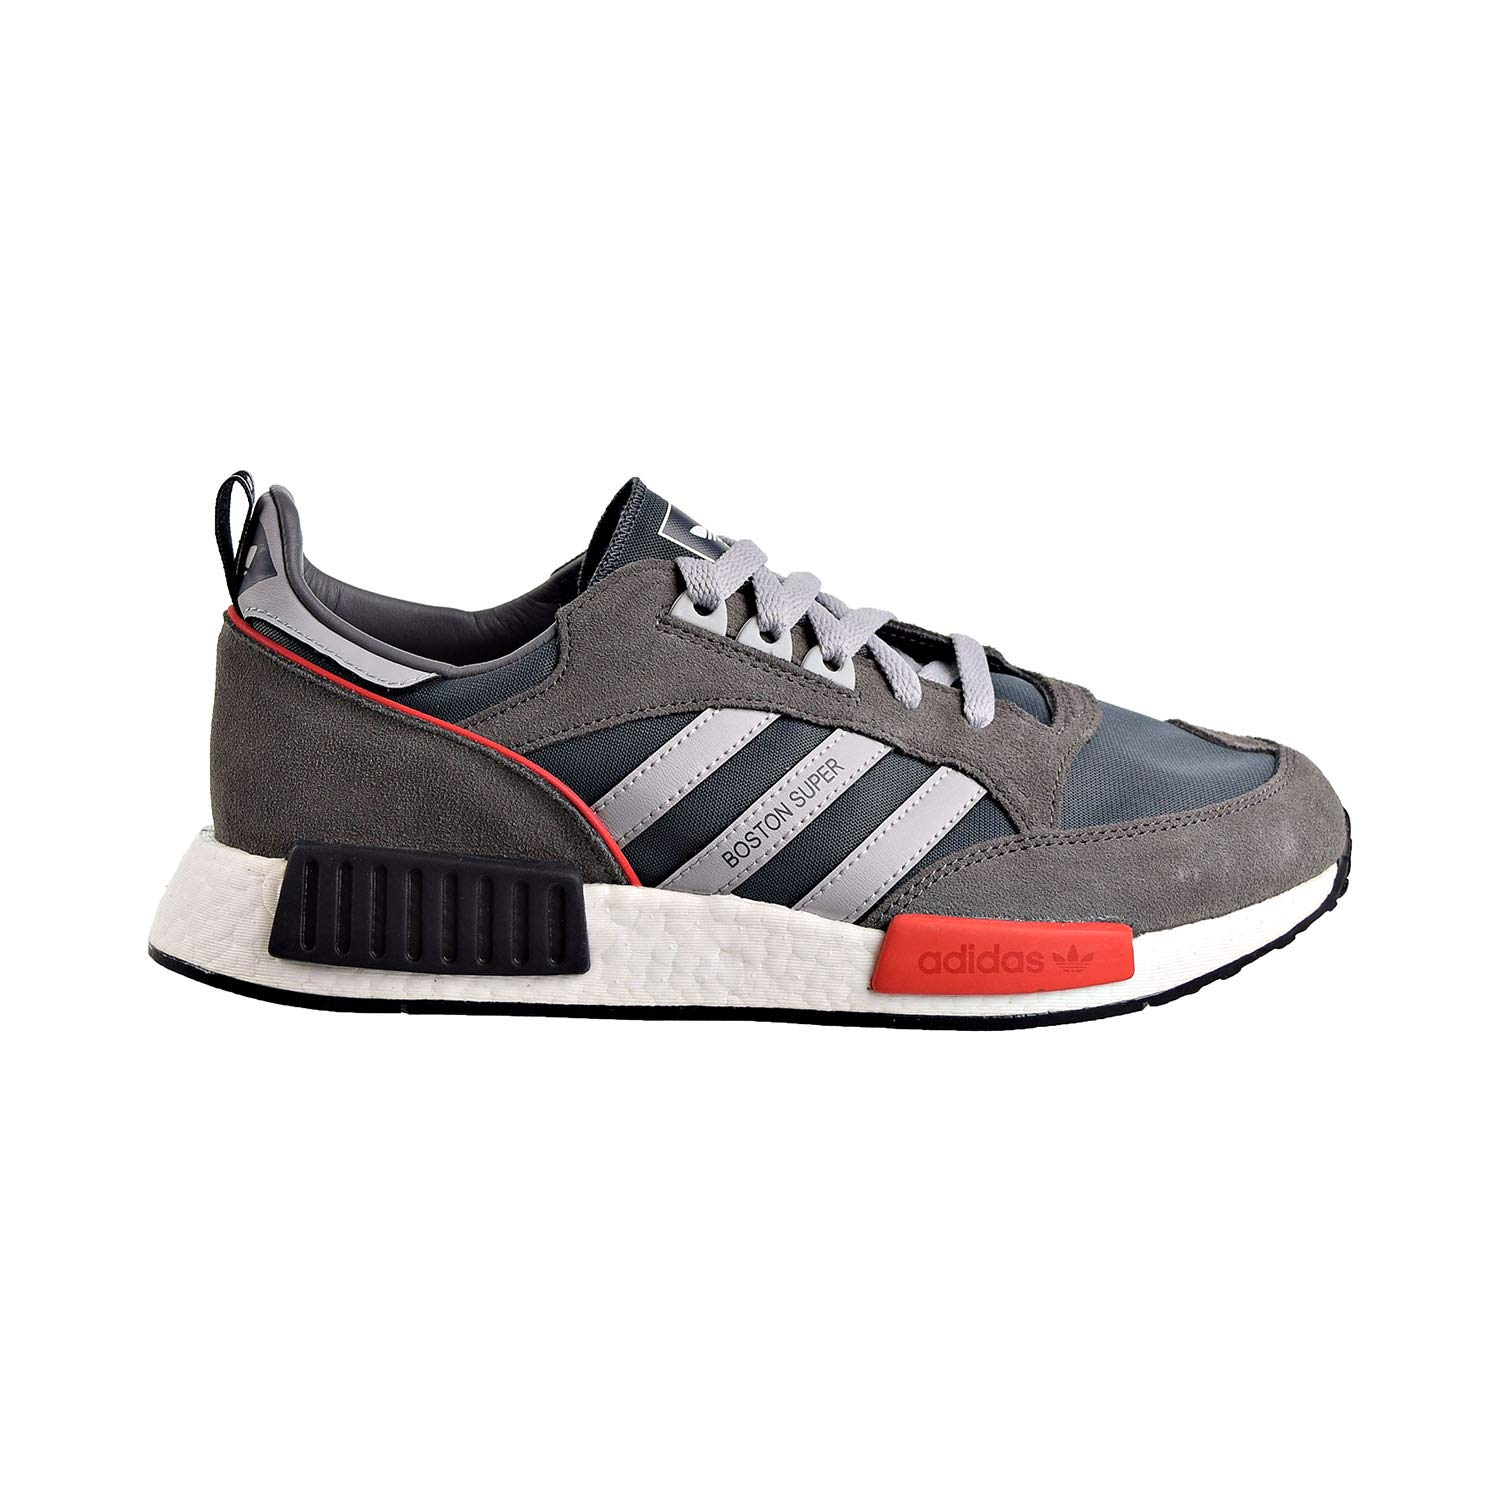 Image of adidas Boston Super X R1 Mens Shoes Bold Onix/Clear Onix/Cloud White g26776 Fashion Sneakers